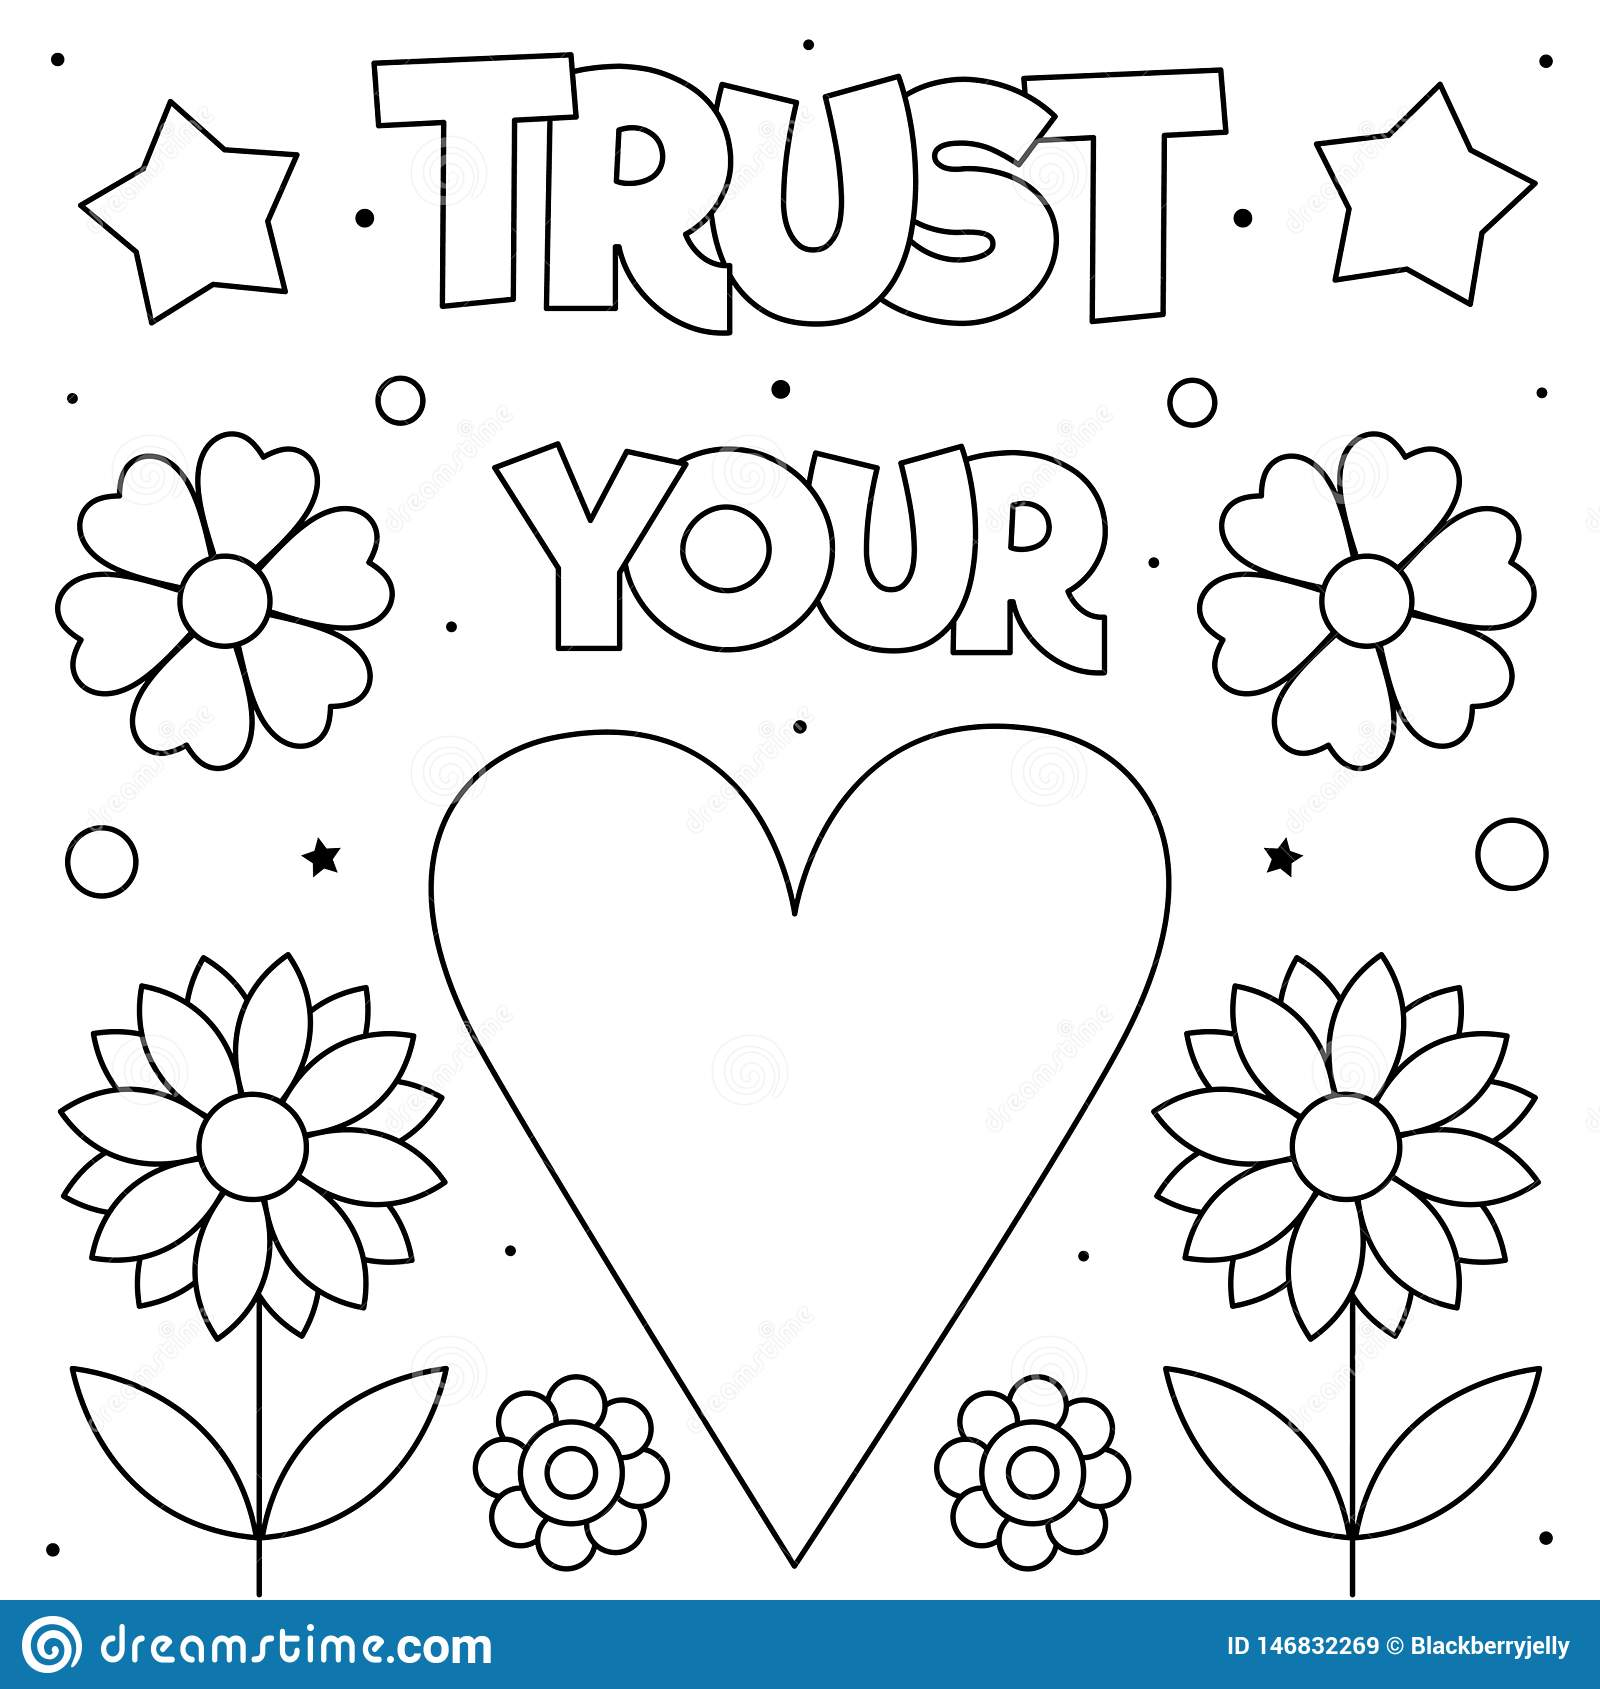 Trust Your Heart. Coloring Page. Vector Illustration. Heart ...